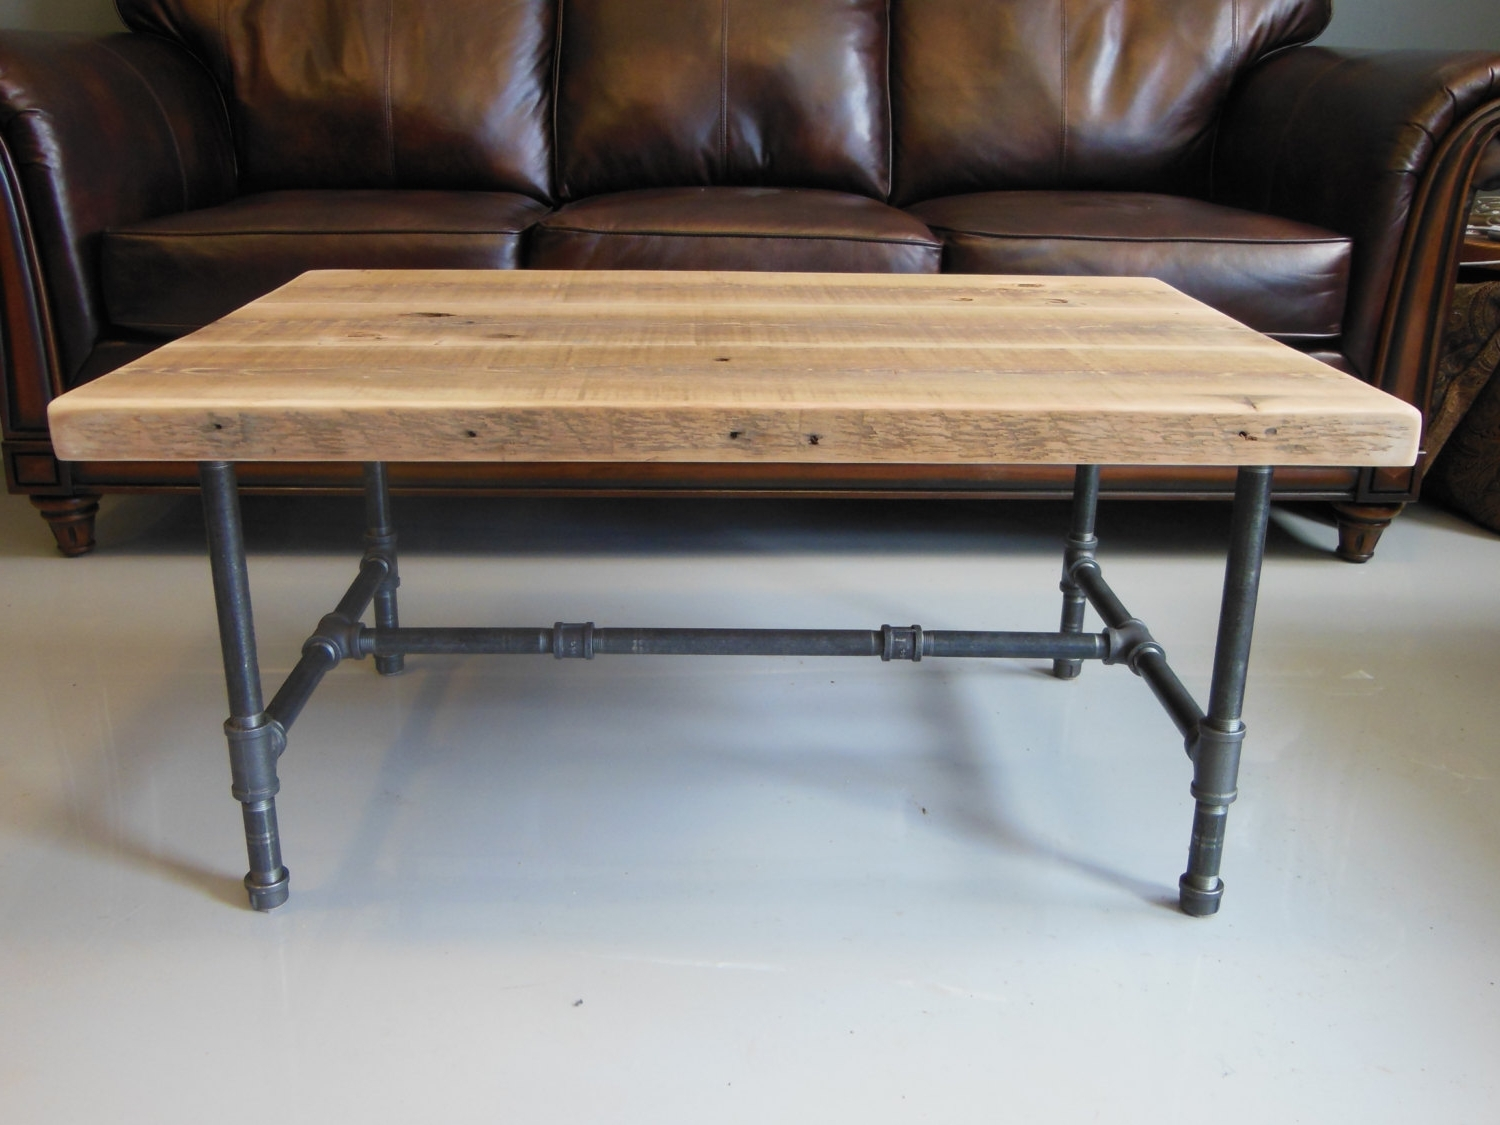 Wood Coffee Table Legs Industrial – Thelightlaughed Within Most Recently Released Iron Wood Coffee Tables With Wheels (View 18 of 20)